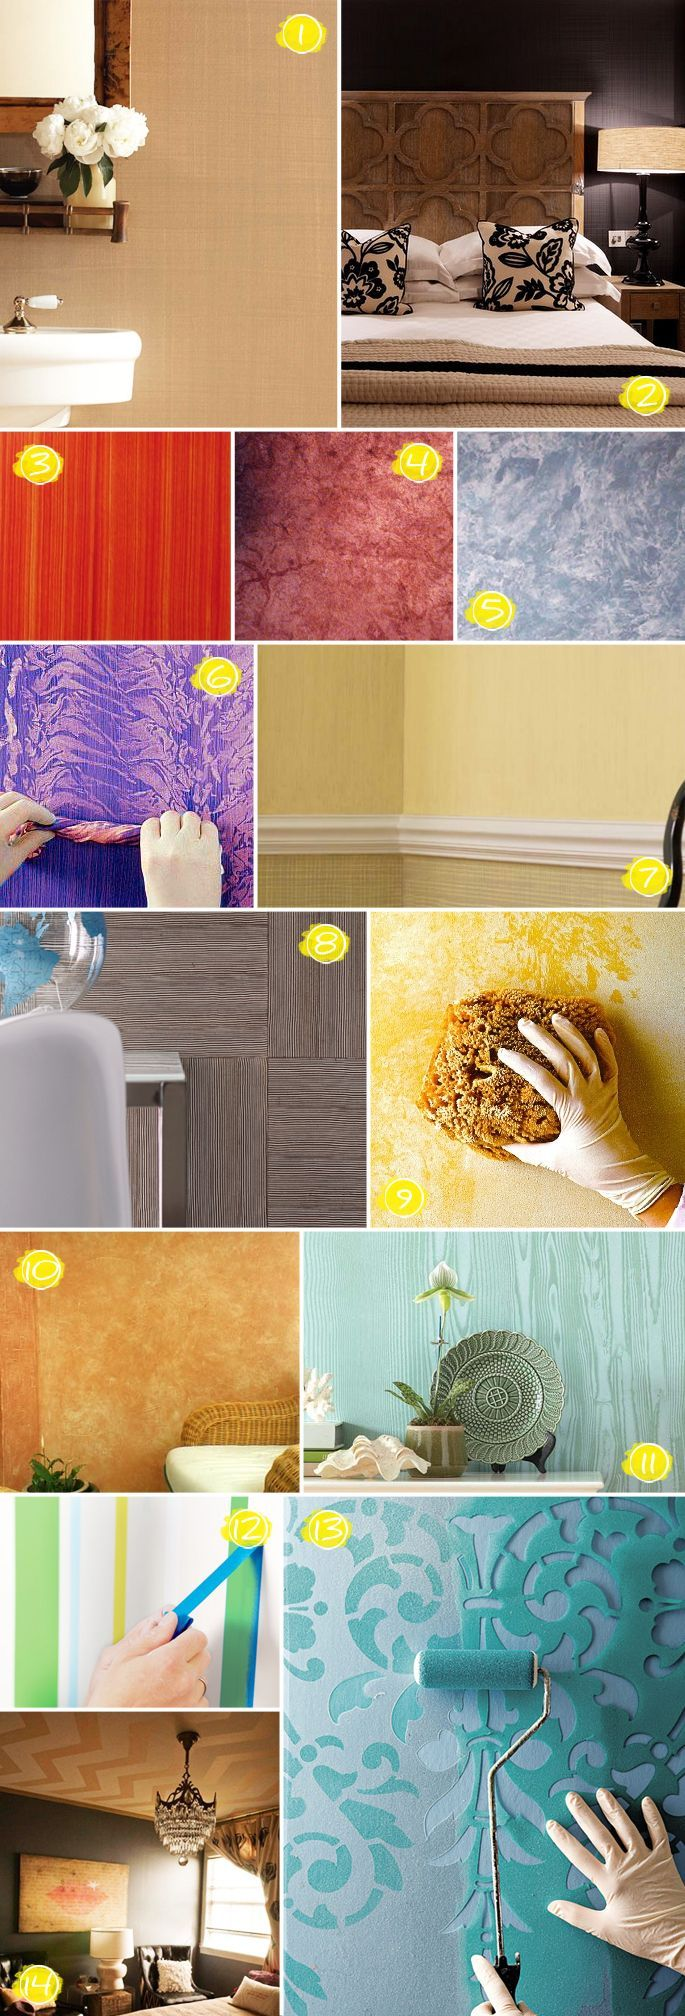 Textured Wall Painting Ideas: From Faux Wood to Linen Effects in ...